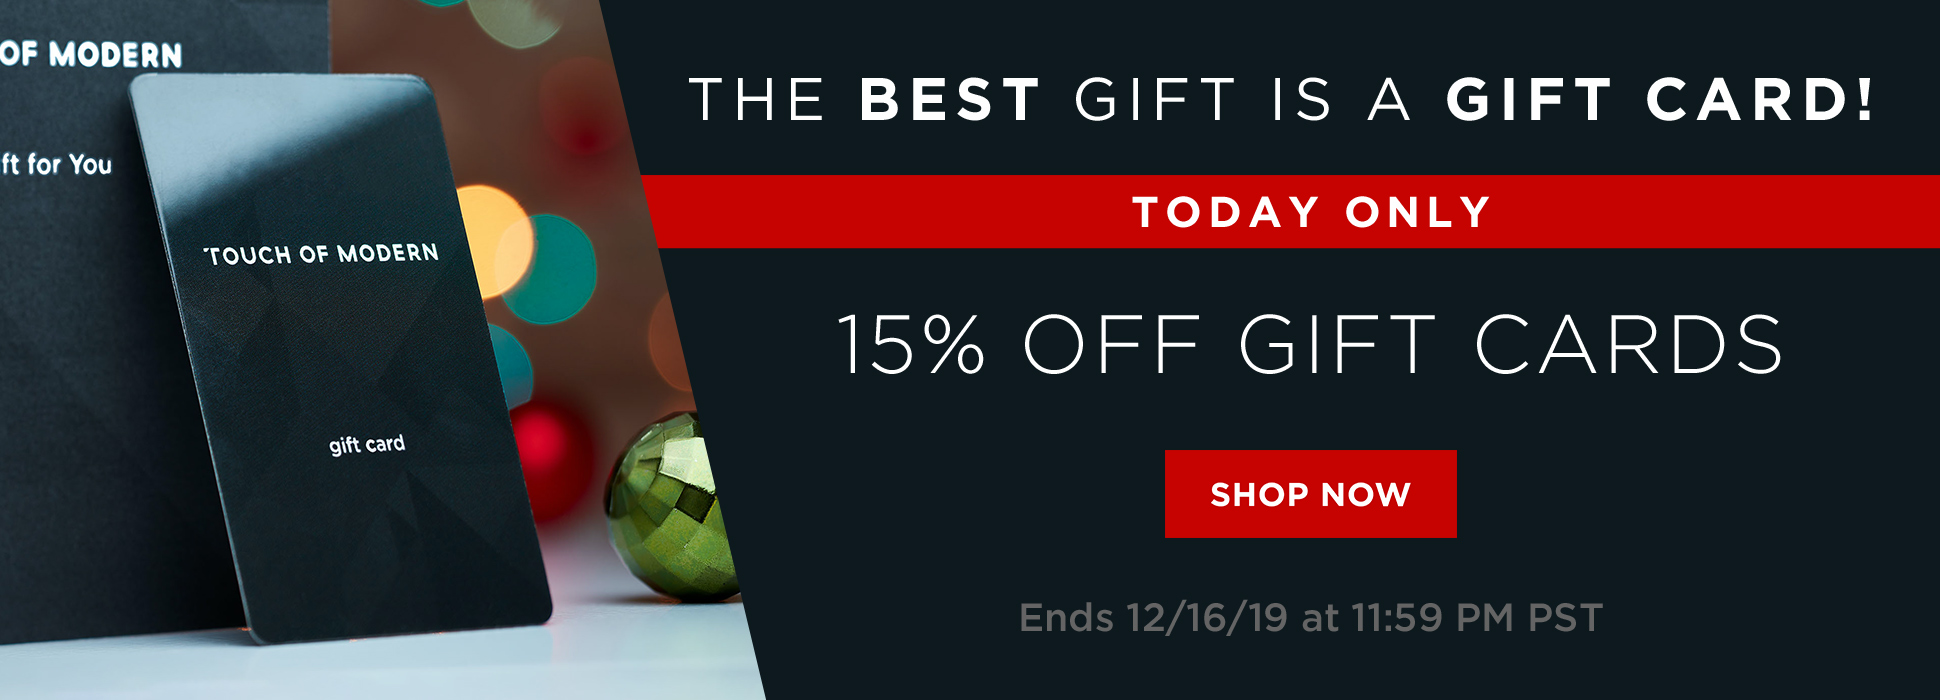 Gift Card 15% Off (Web Banner)